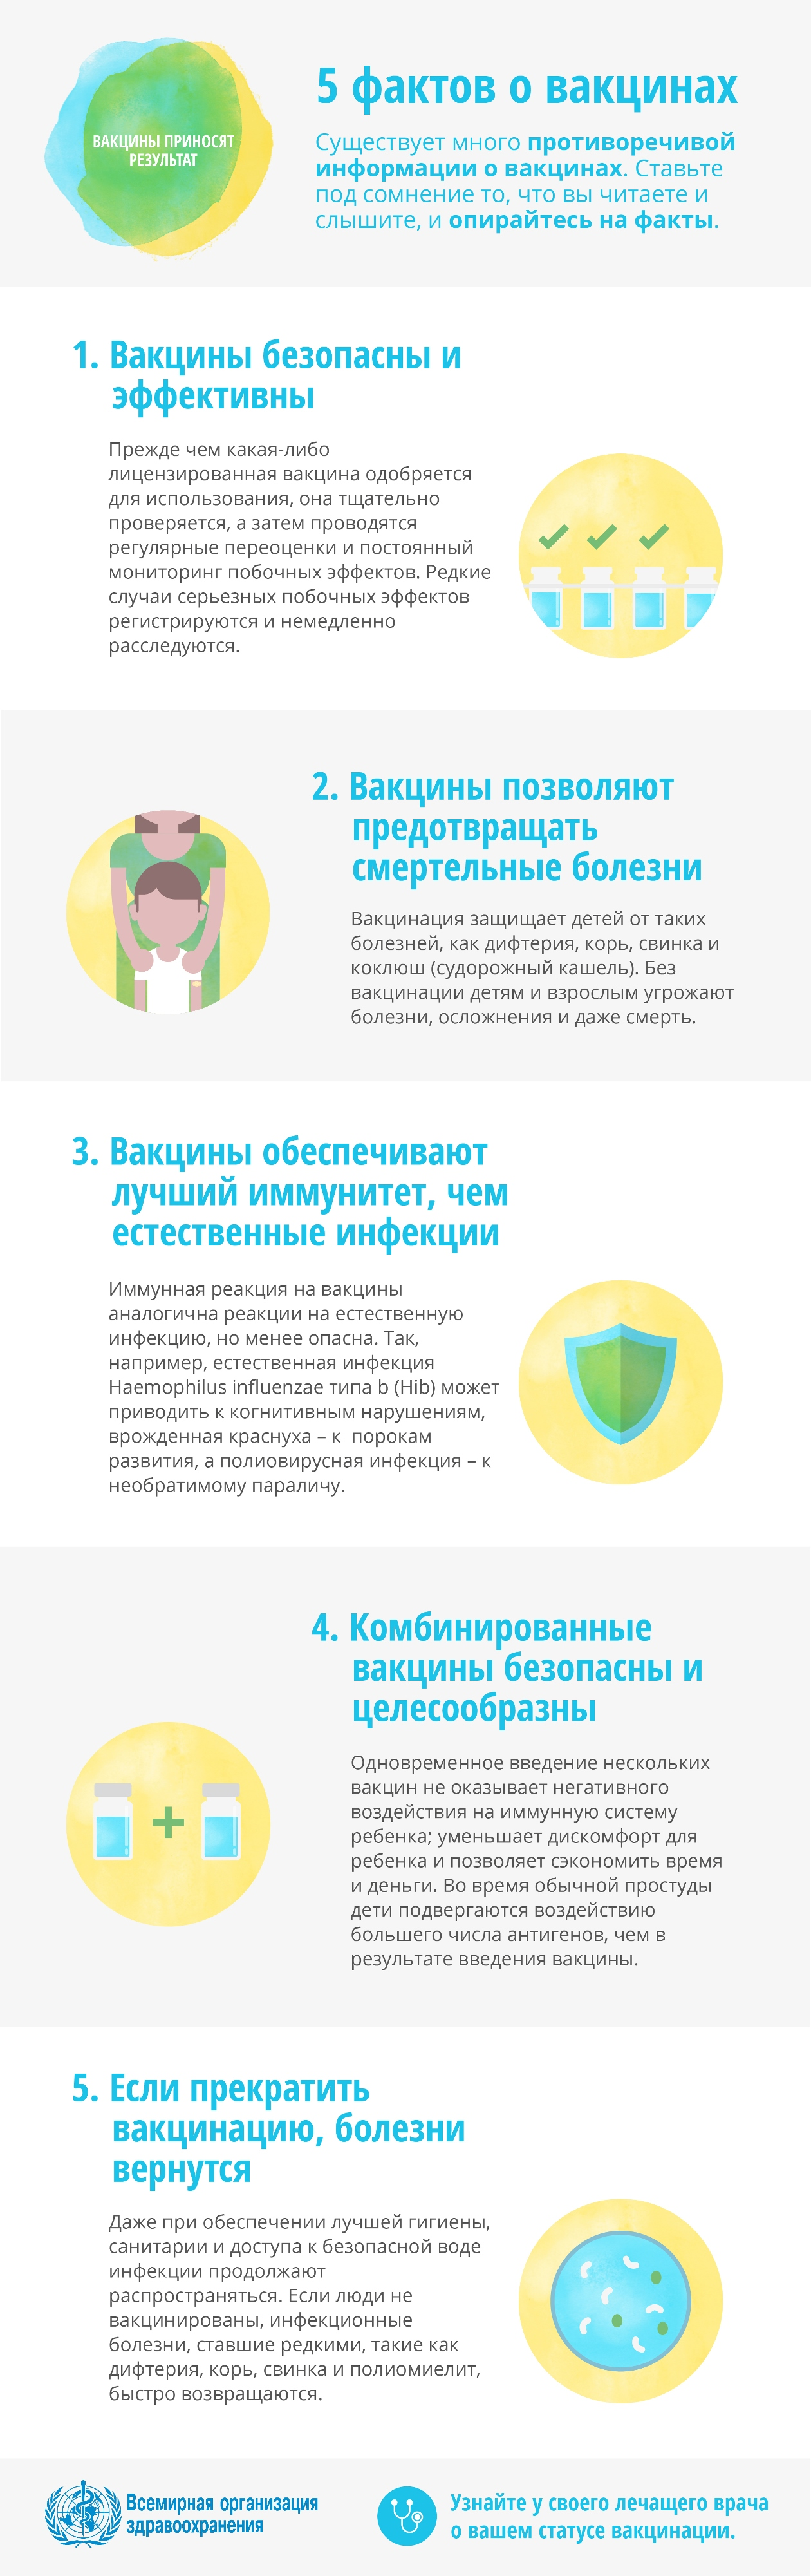 infographics 5 facts complete ru